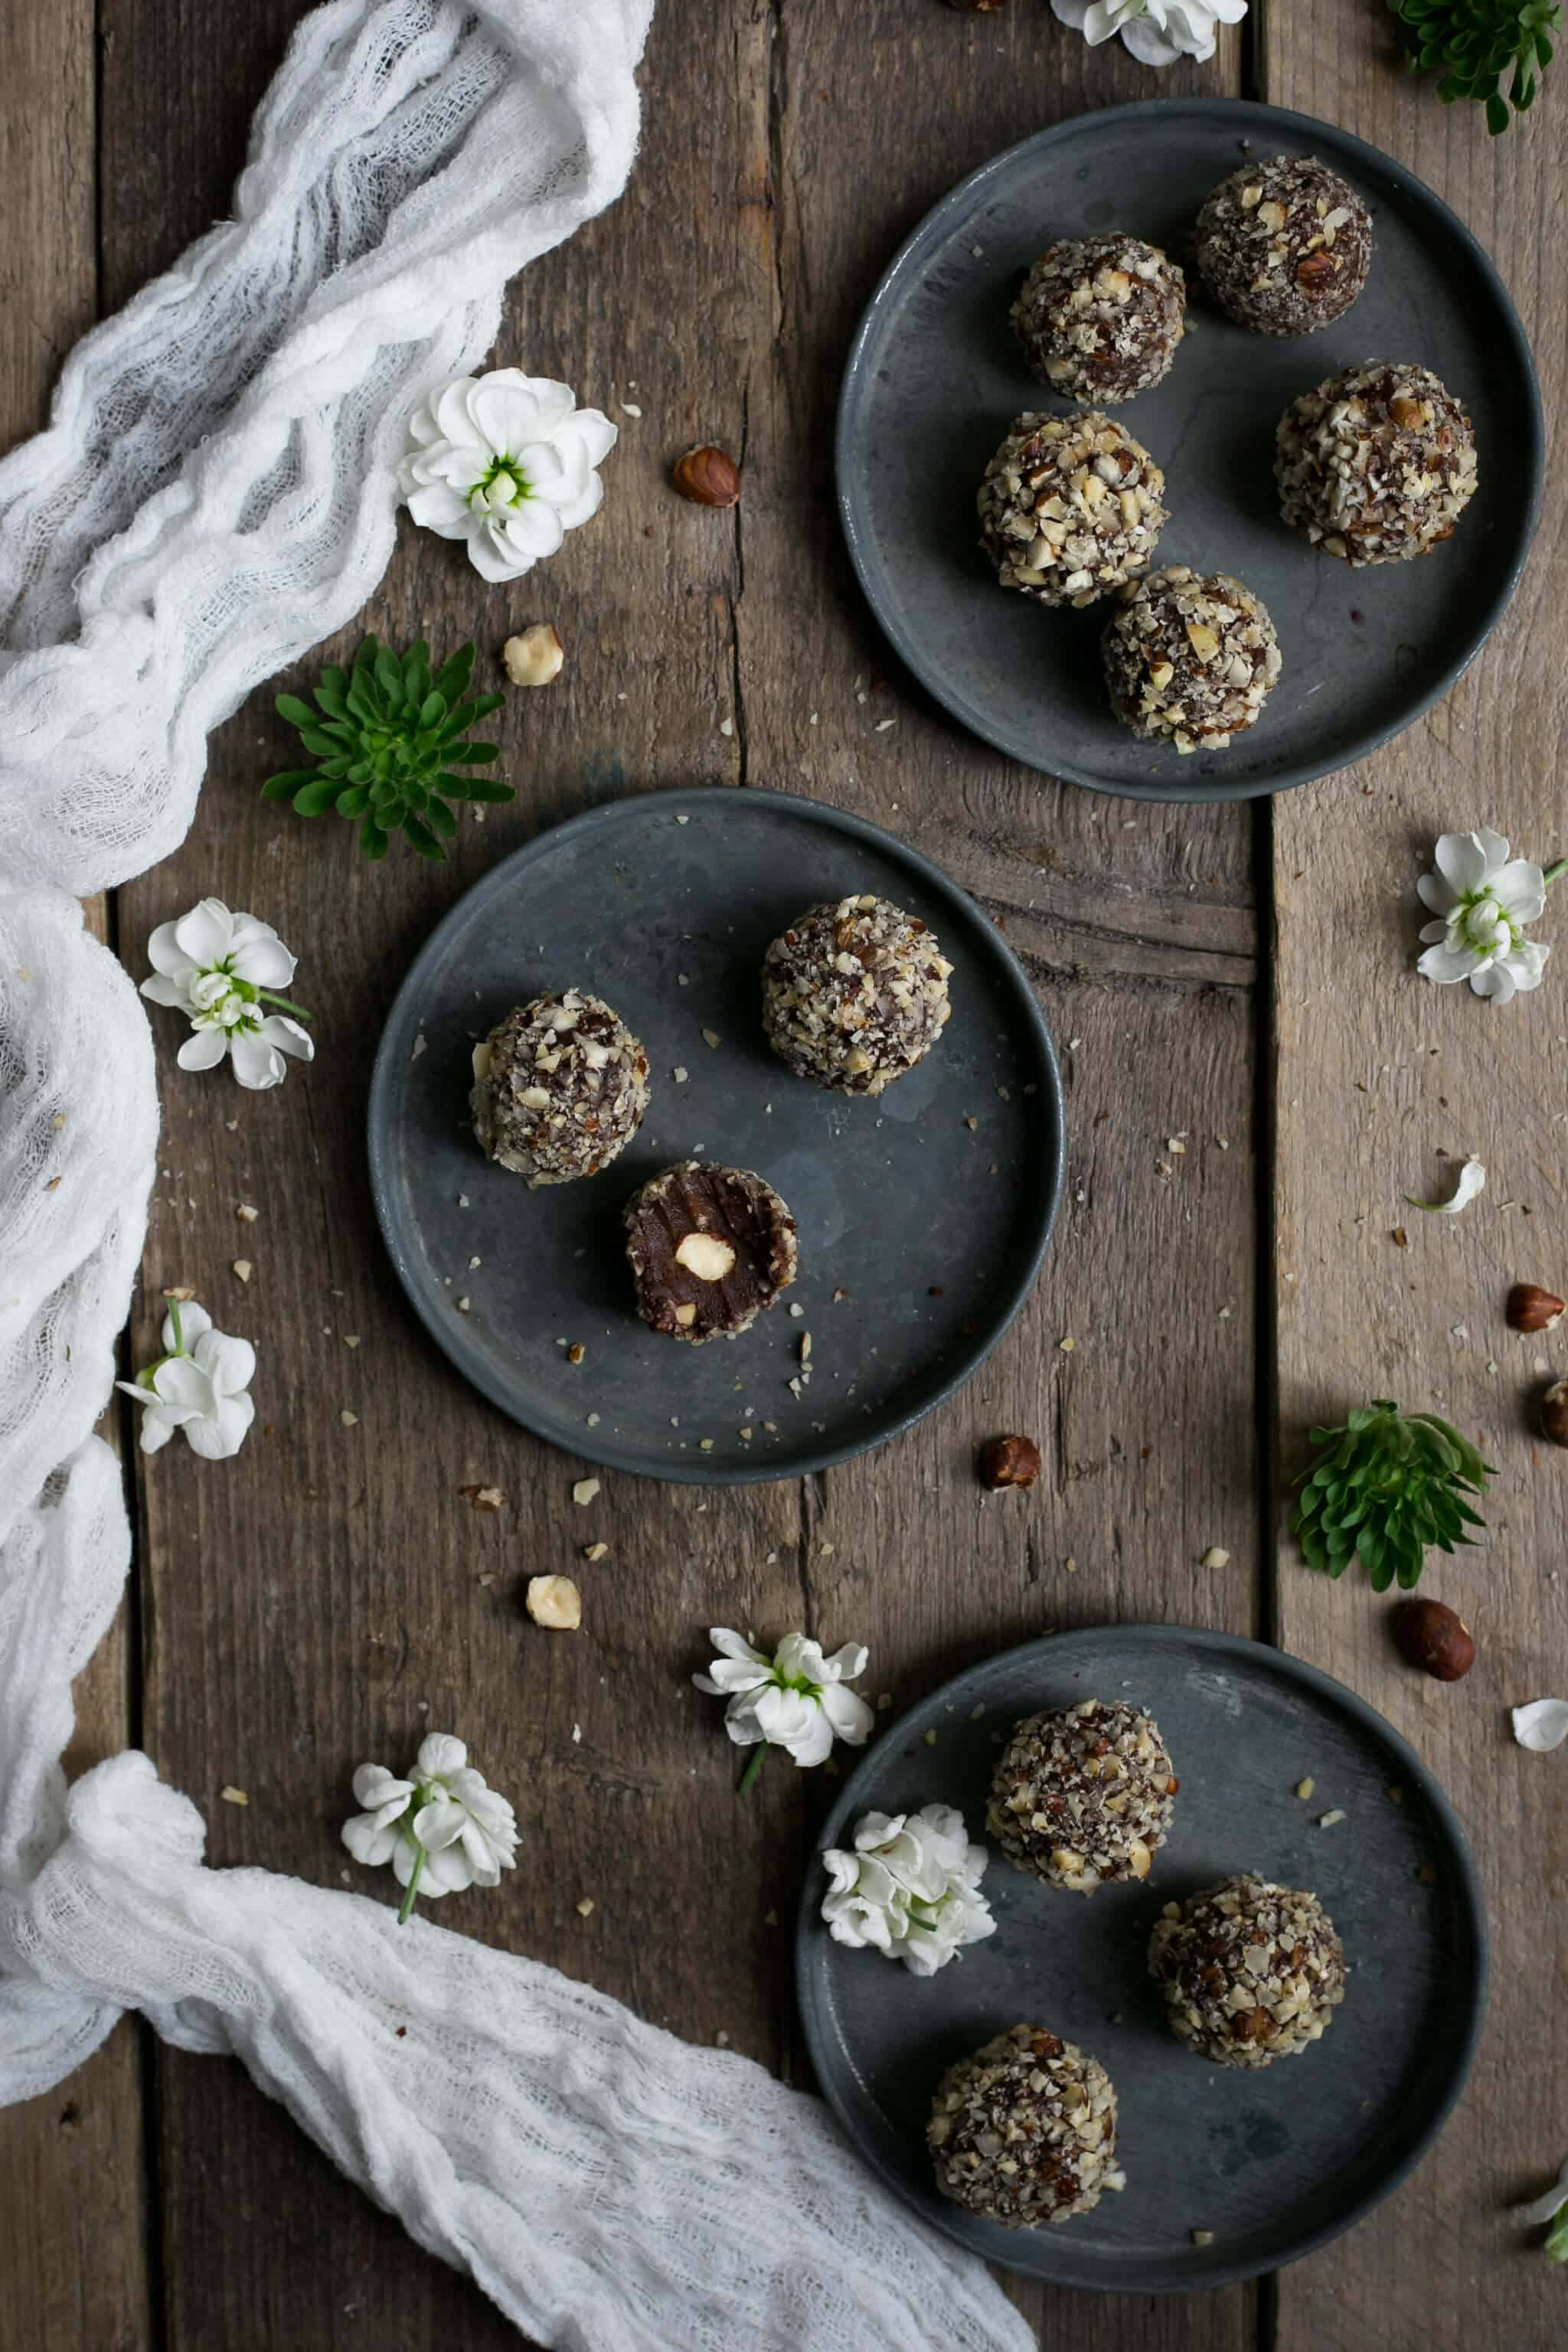 Chocolate and hazelnut Ferrero Rocher | via @annabanana.co